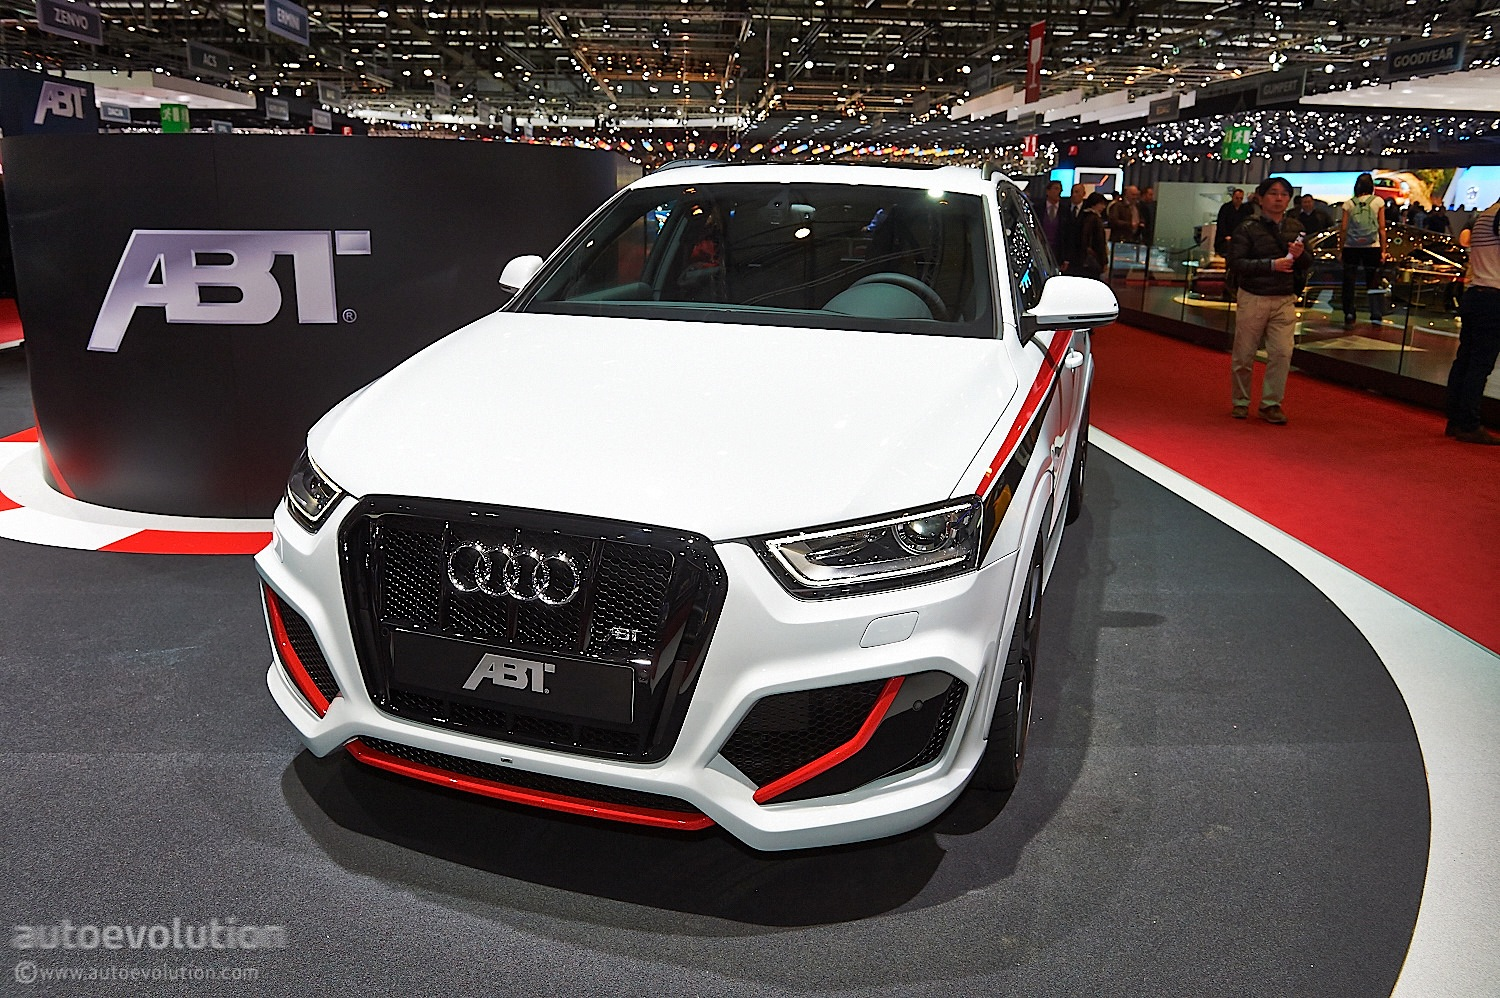 Abt Puts Power Back Into 2 5 Tfsi With Audi Rs Q3 Tuning Project Live Photos Autoevolution